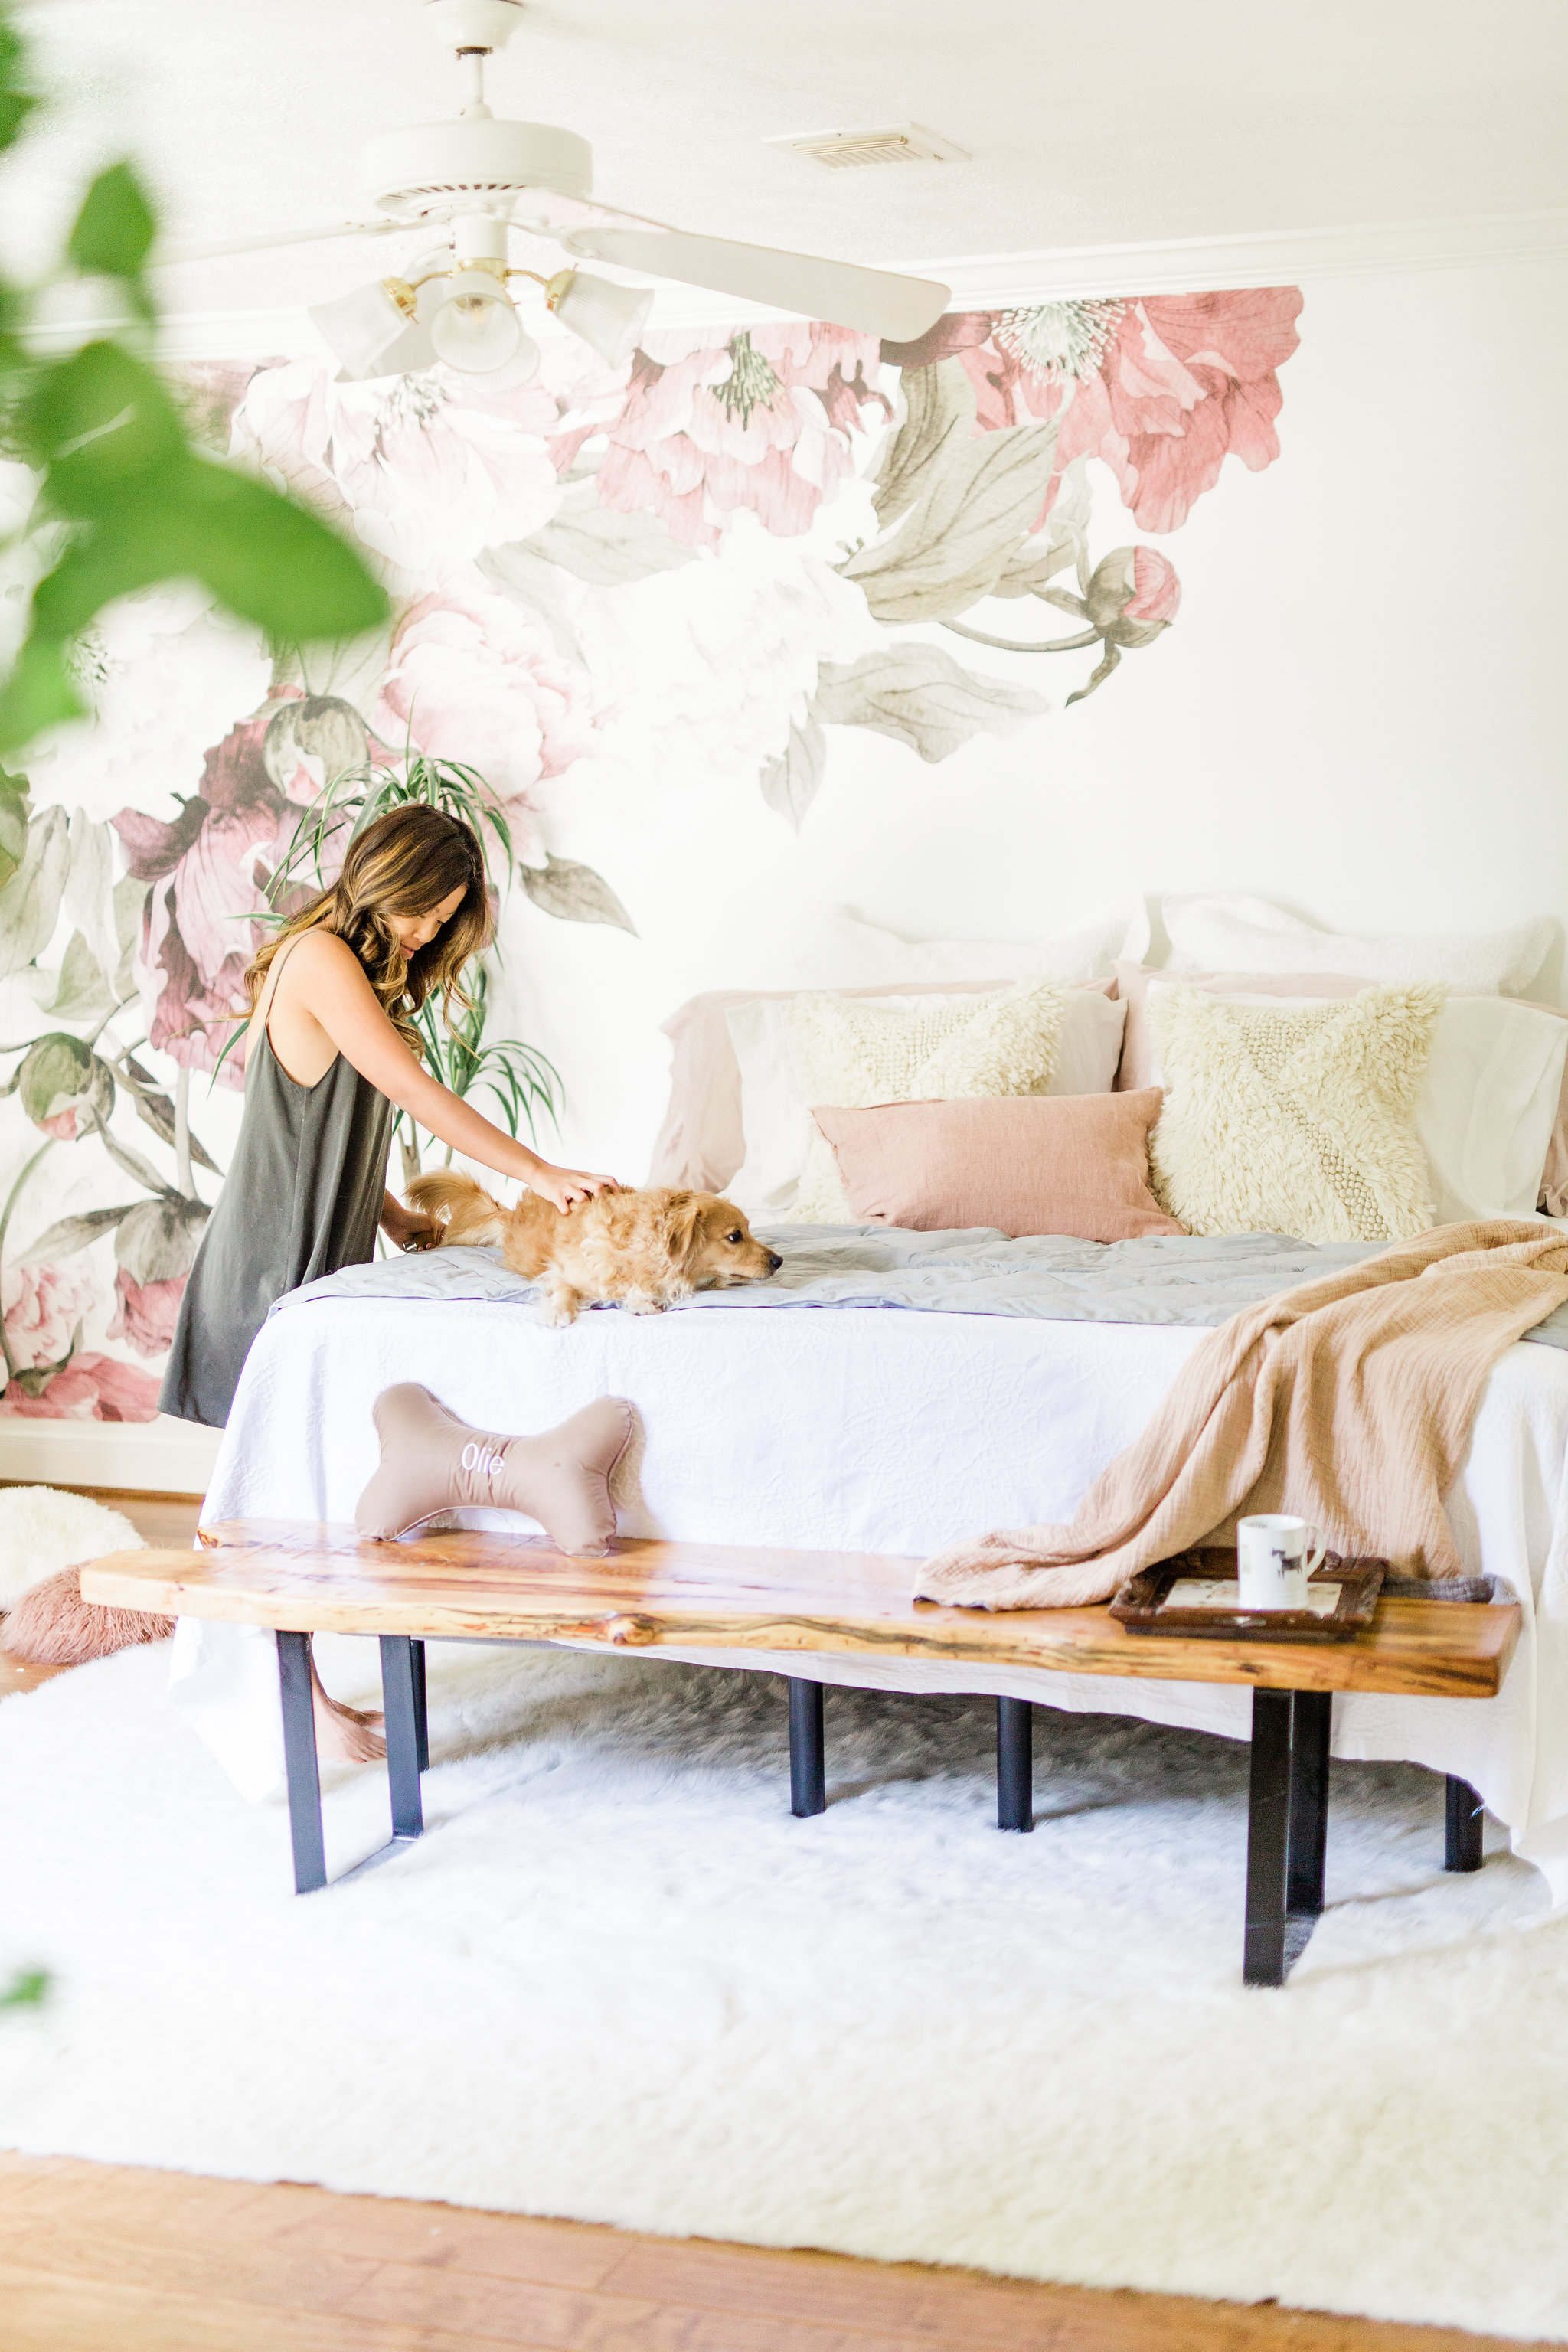 3 ways to create a welcoming and relaxing space for your new puppy on National Dog Day Pet Teepee Dog Bed decor ideas with floral removable wall paper